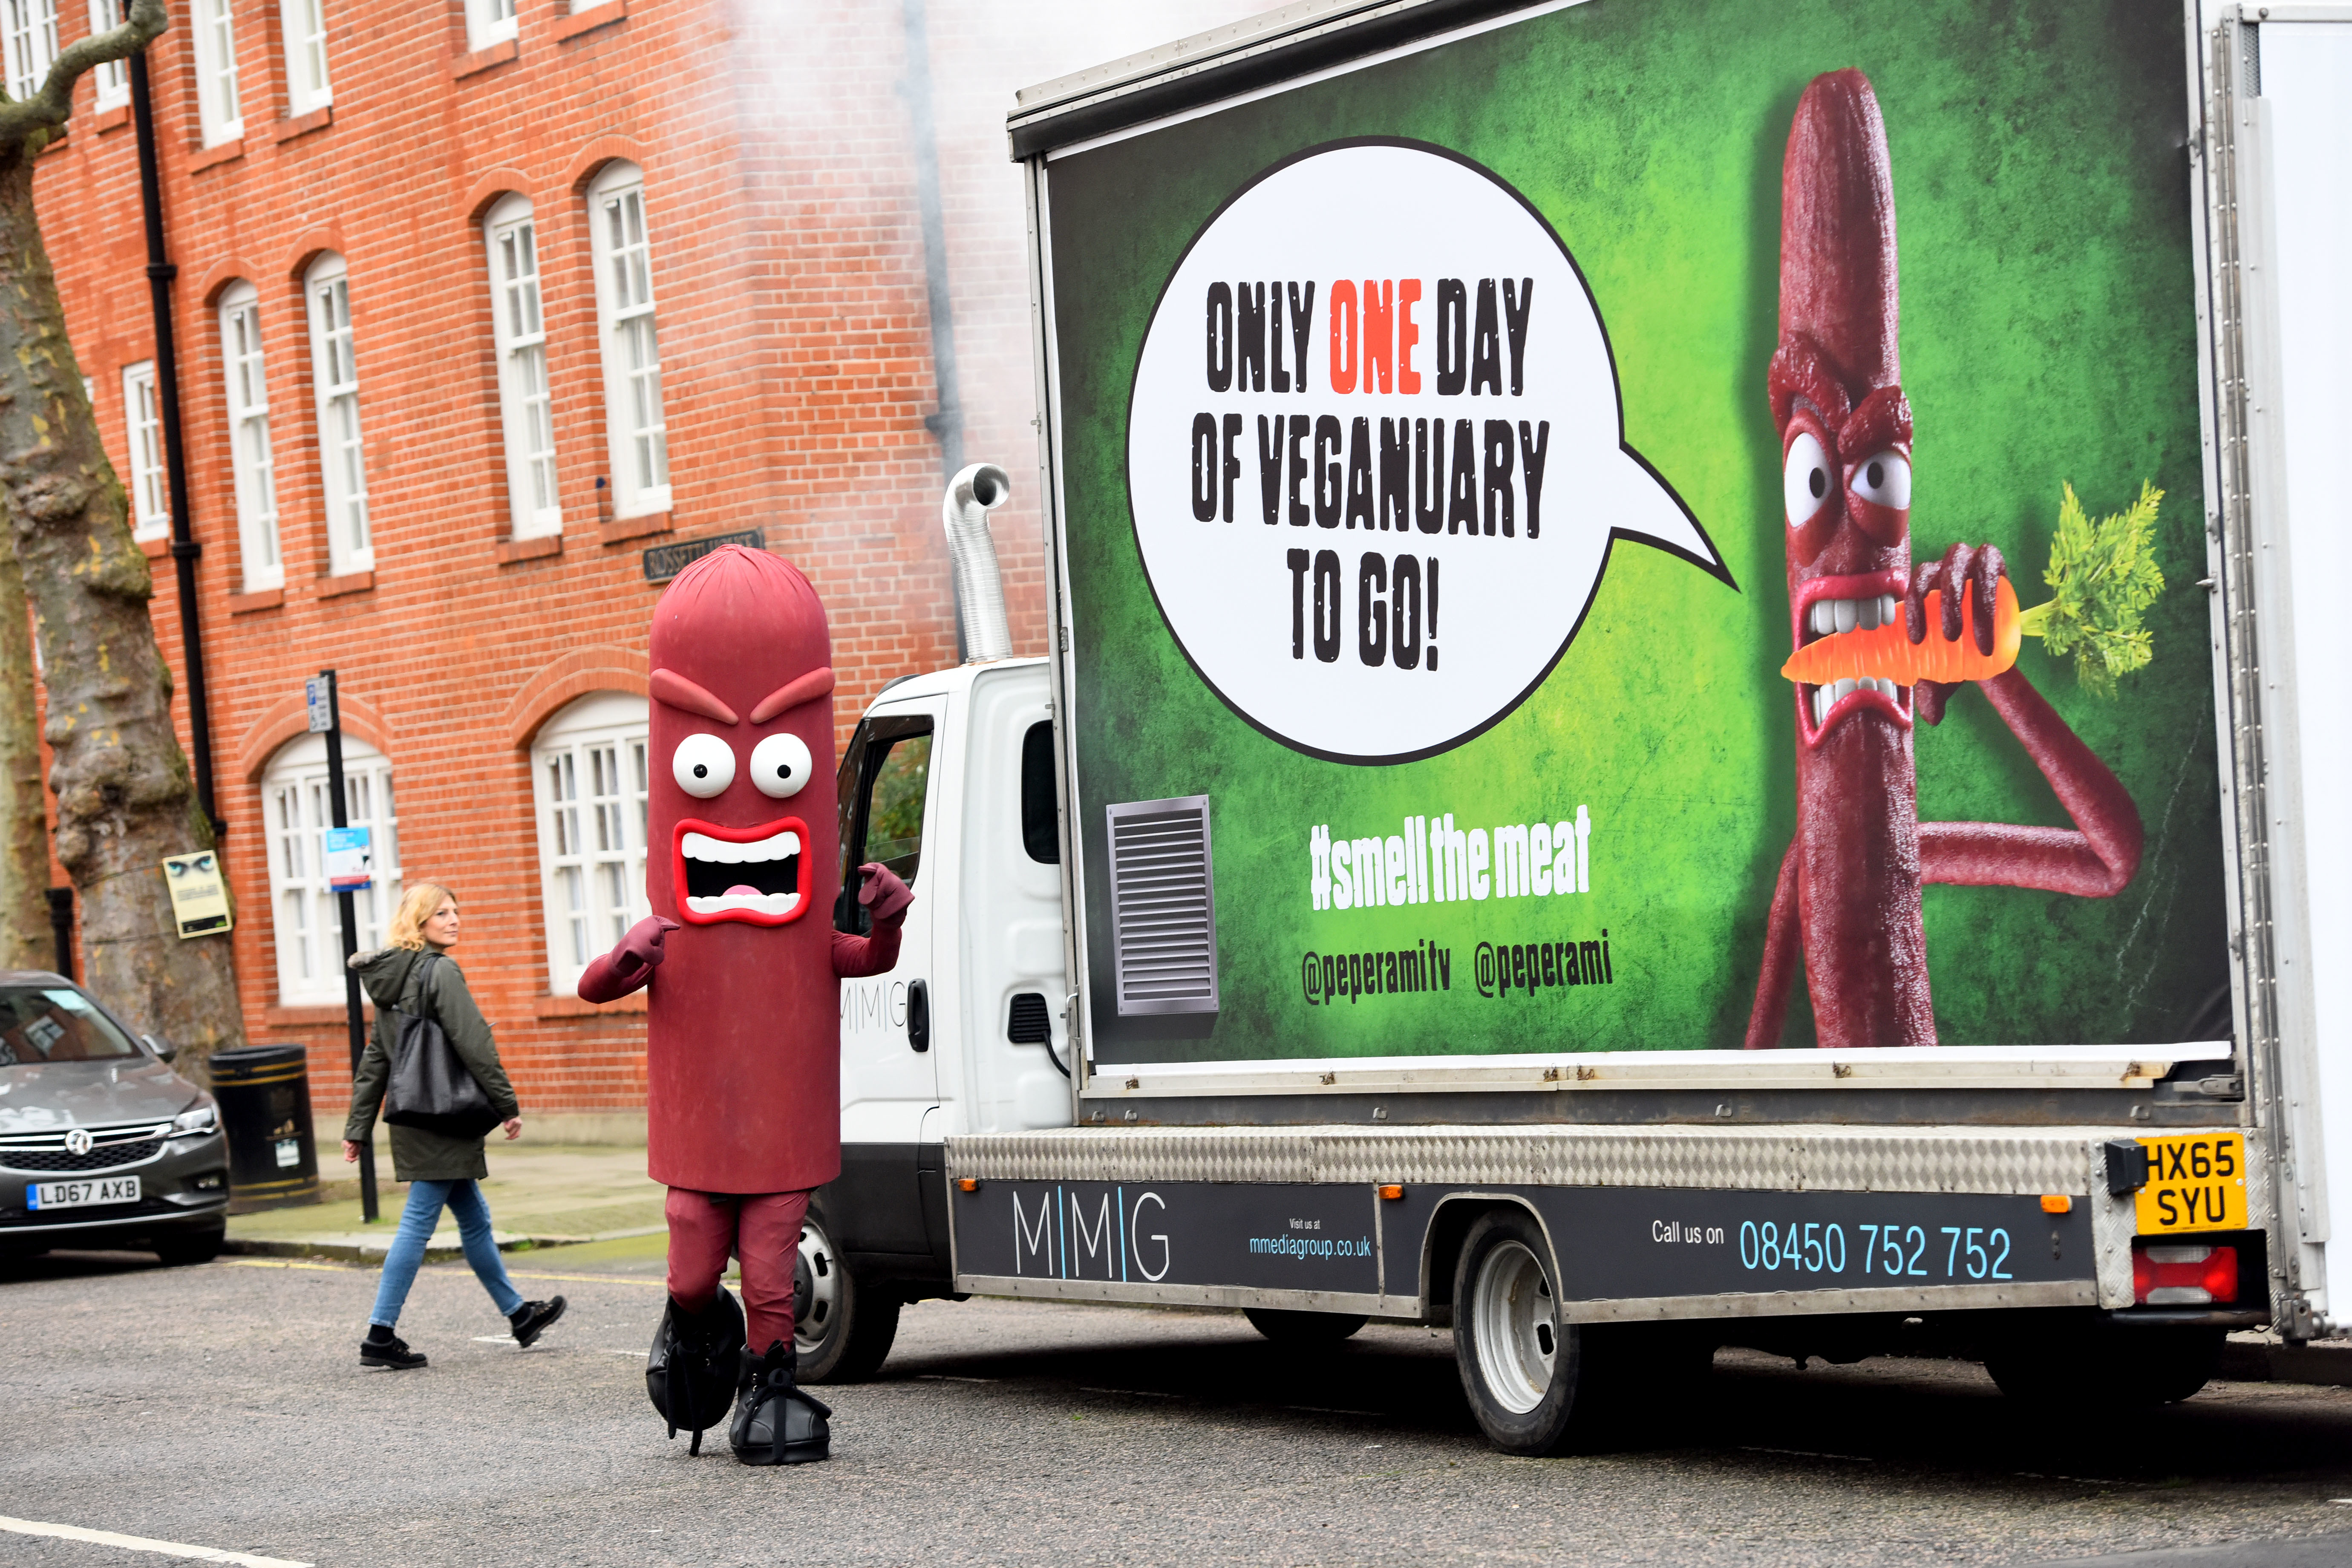 Peperami Delivers A Meaty Surprise On The Last Day Of Veganuary